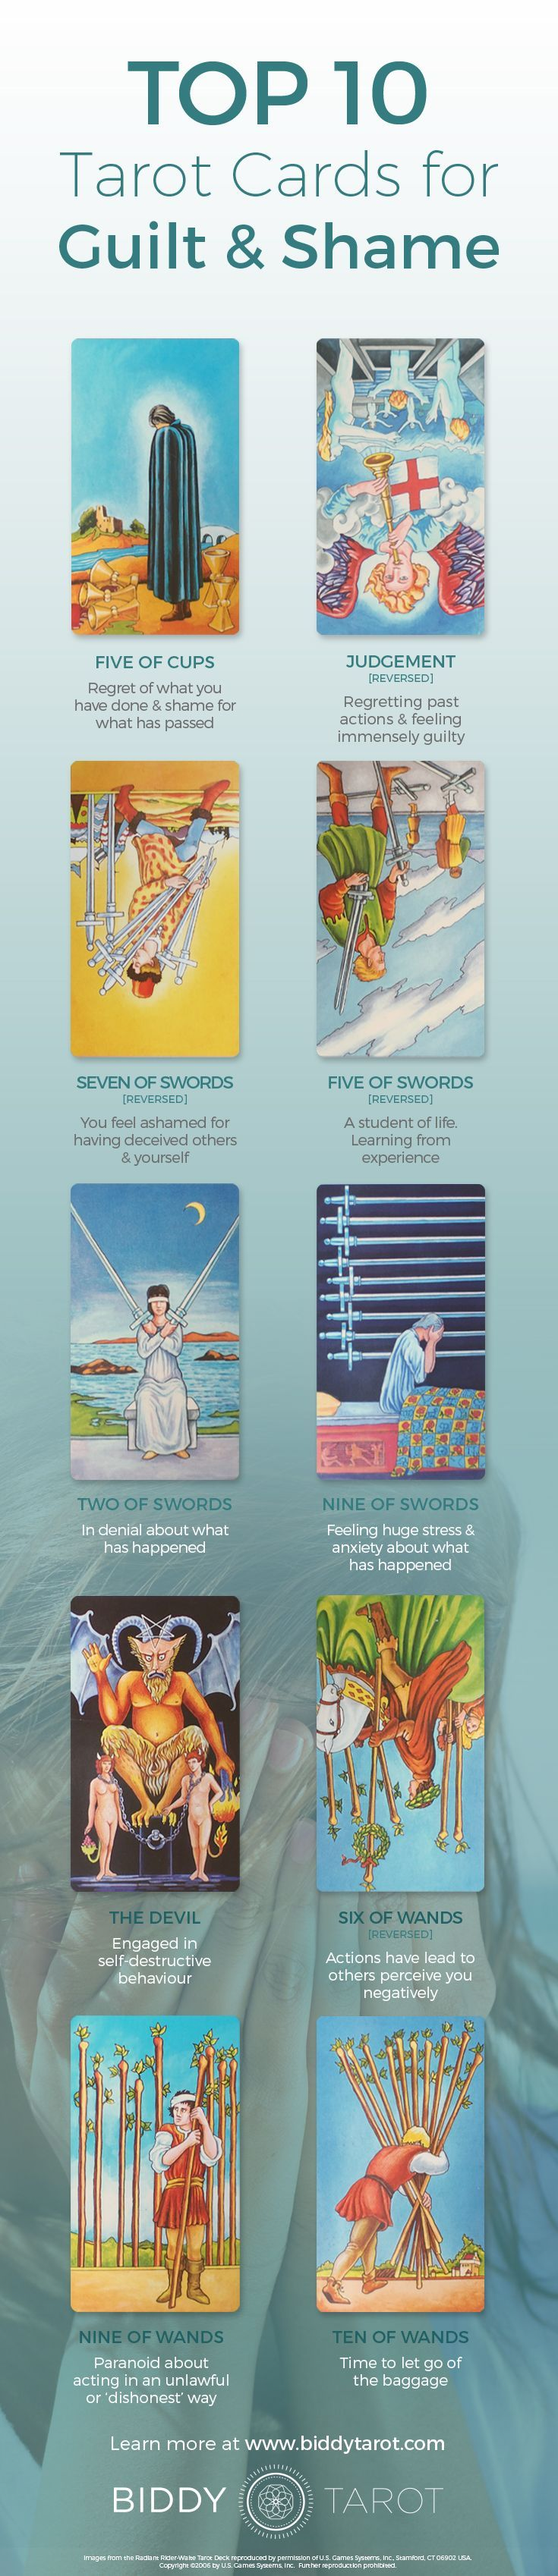 When these #Tarot cards appear, there are some skeletons in the closet. It's time to be #honest, kickstart the #healing process and #confront feelings of #guilt and #shame head on. Download your free copy of my Top 10 Tarot Cards for love, finances, career, life purpose and so much more at https://www.biddytarot.com/top-ten-cards-ebook/ It's my gift to you!